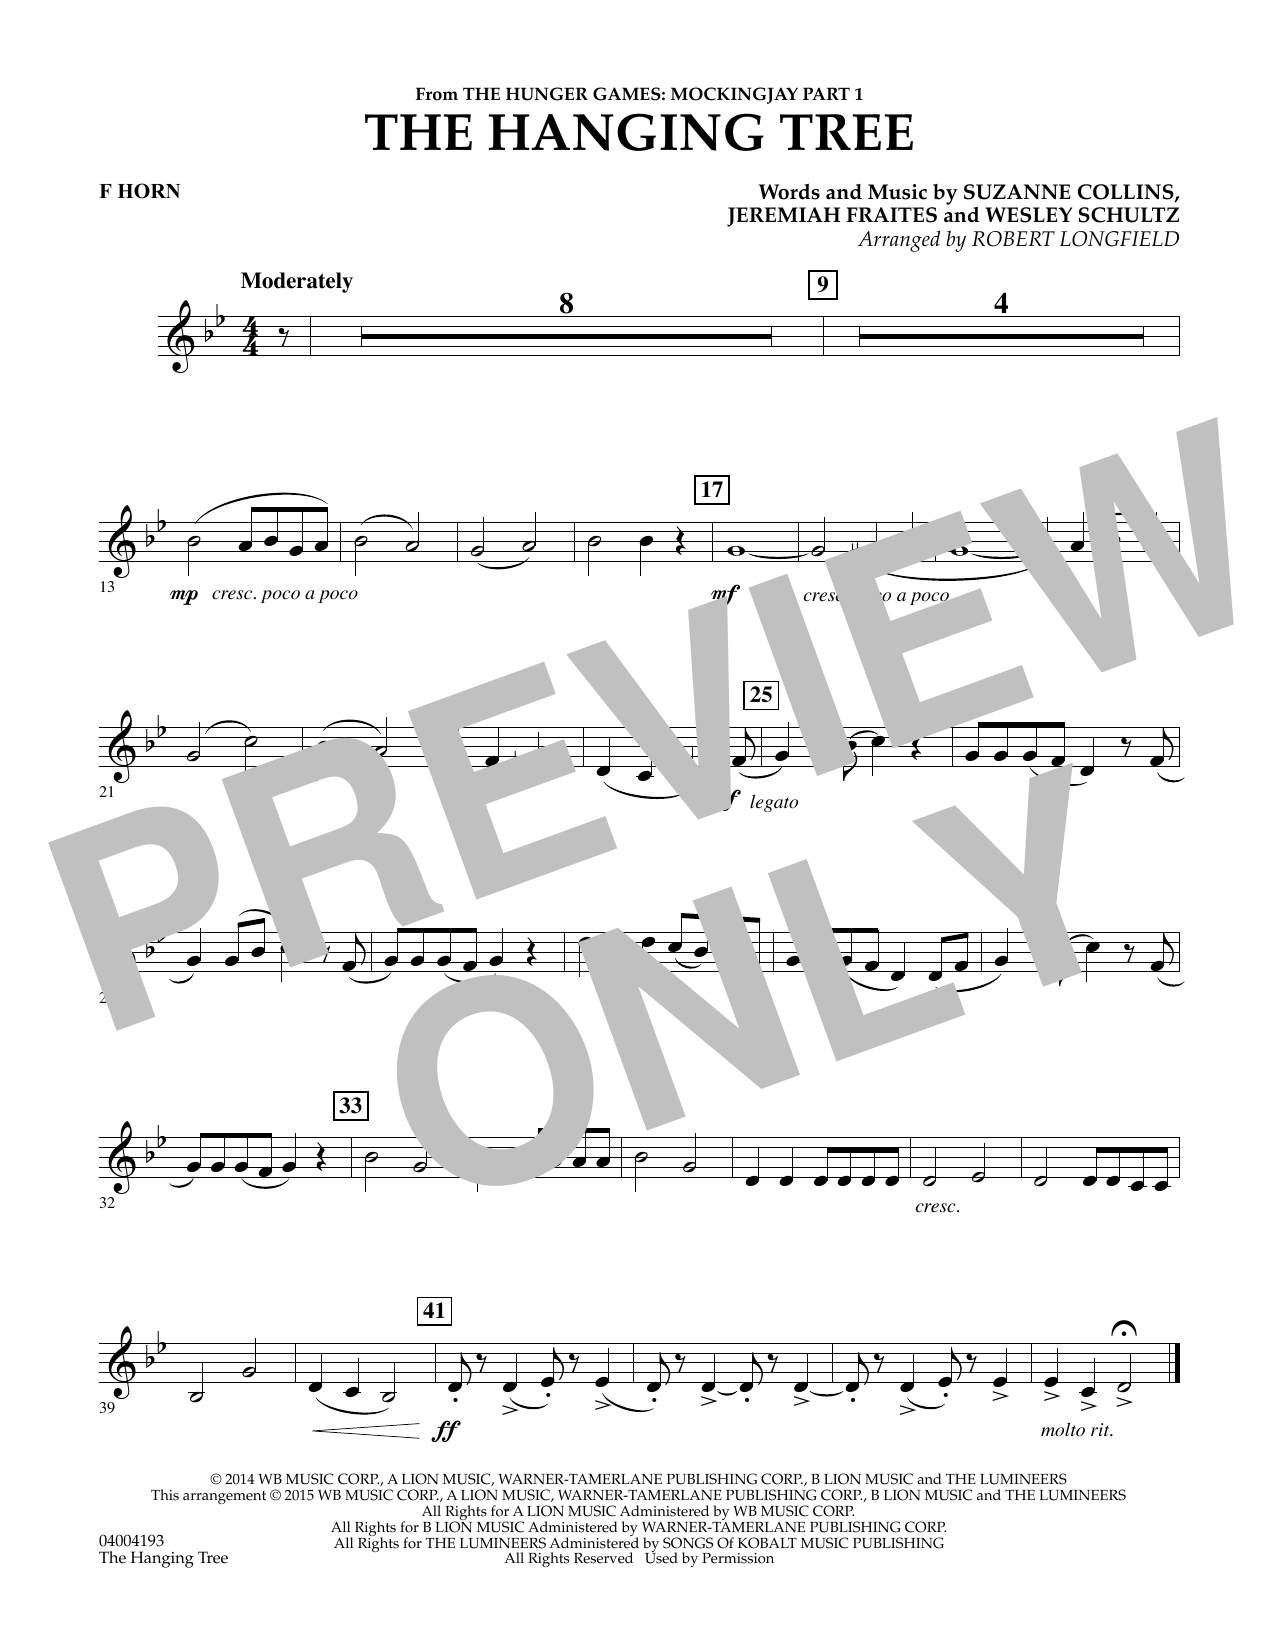 Robert Longfield The Hanging Tree (from The Hunger Games: Mockingjay Part 1) - F Horn sheet music notes and chords. Download Printable PDF.